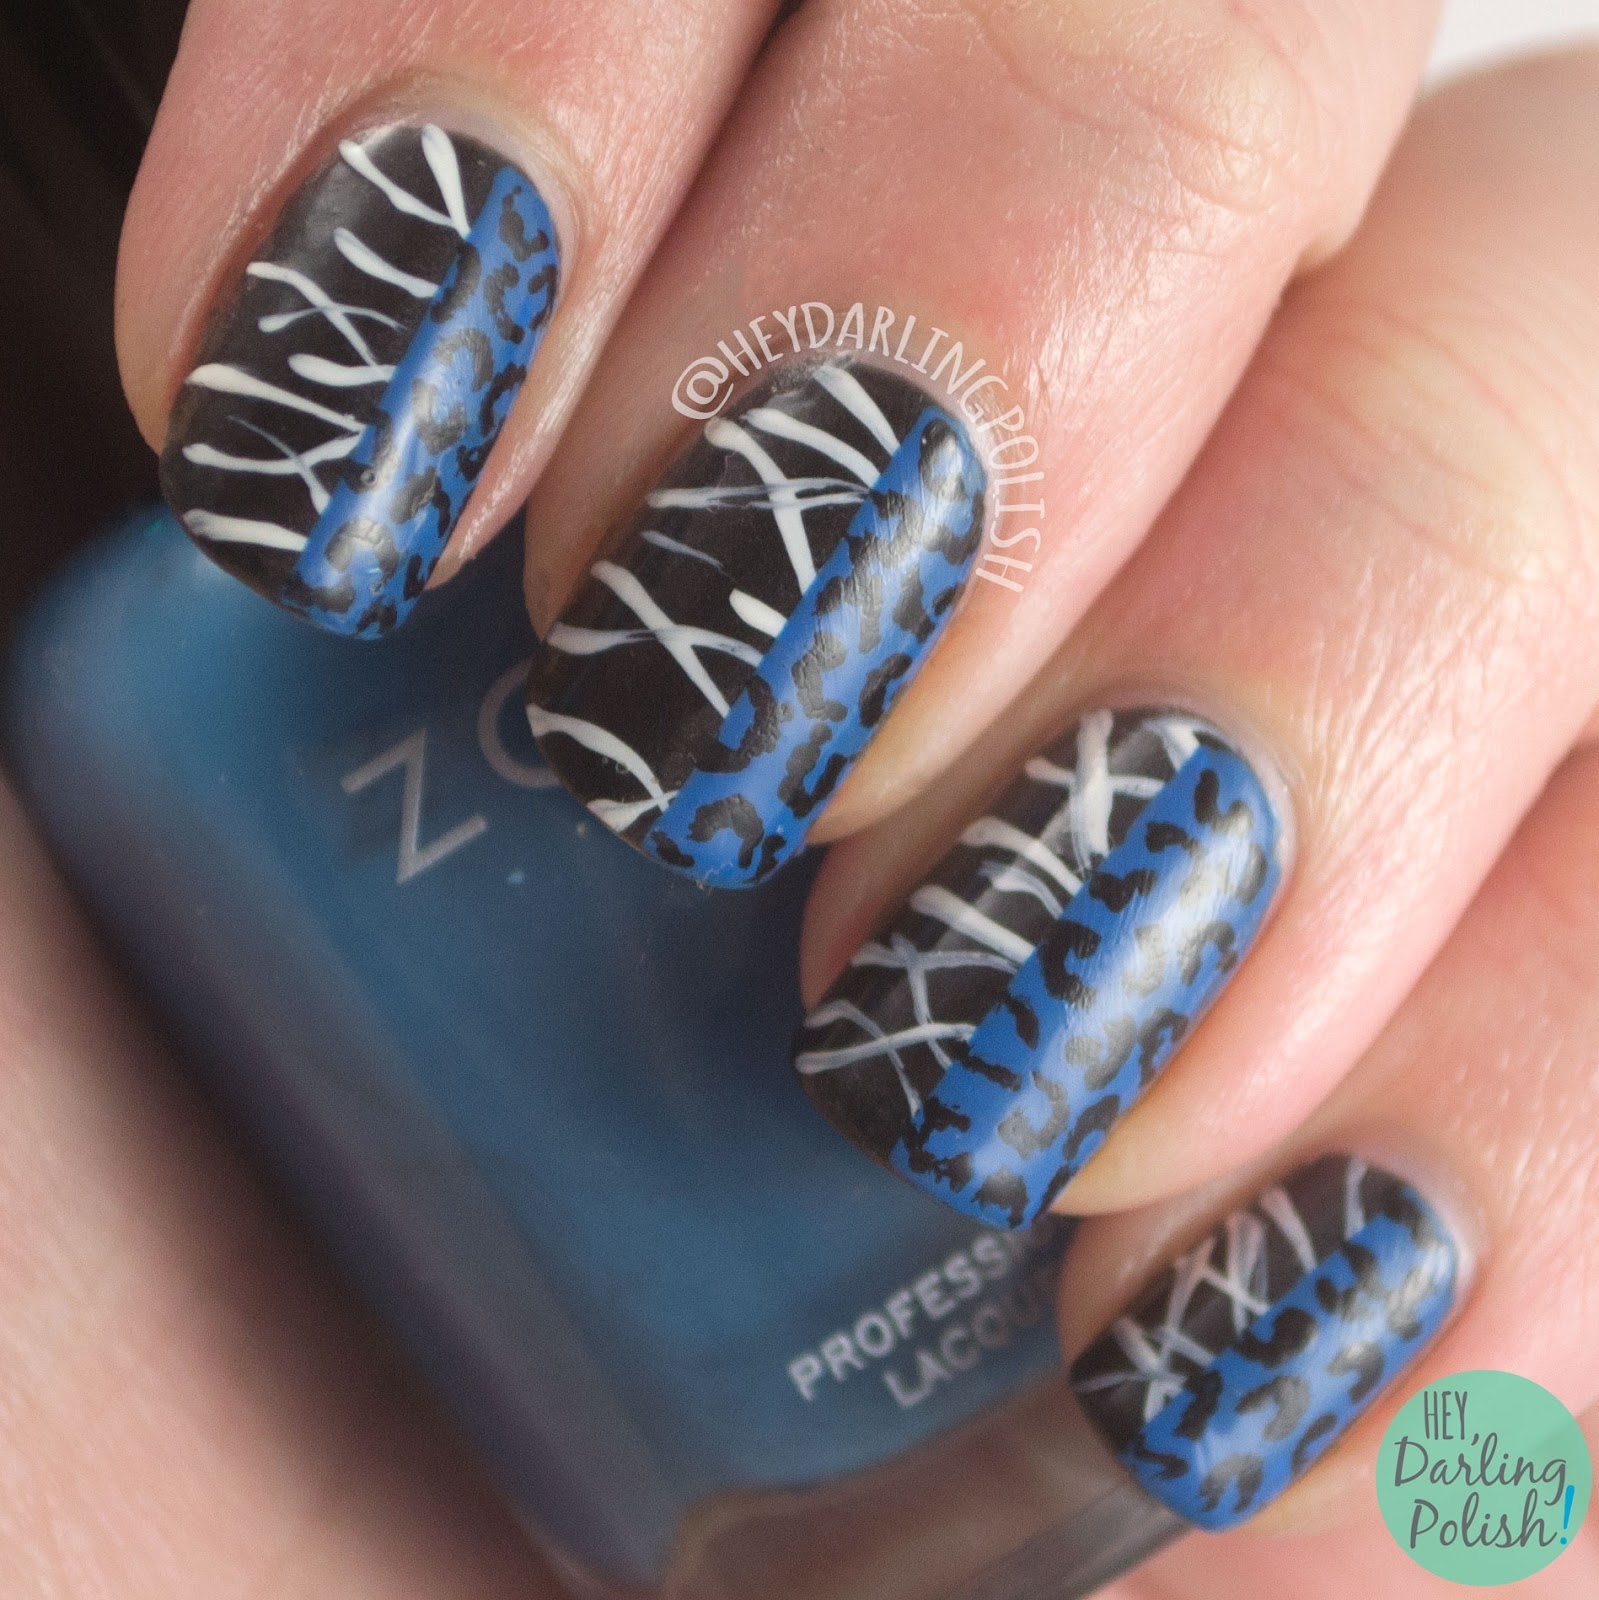 nails, nail art, nail polish, black, blue, fashion, saint laurent, lines, hey darling polish